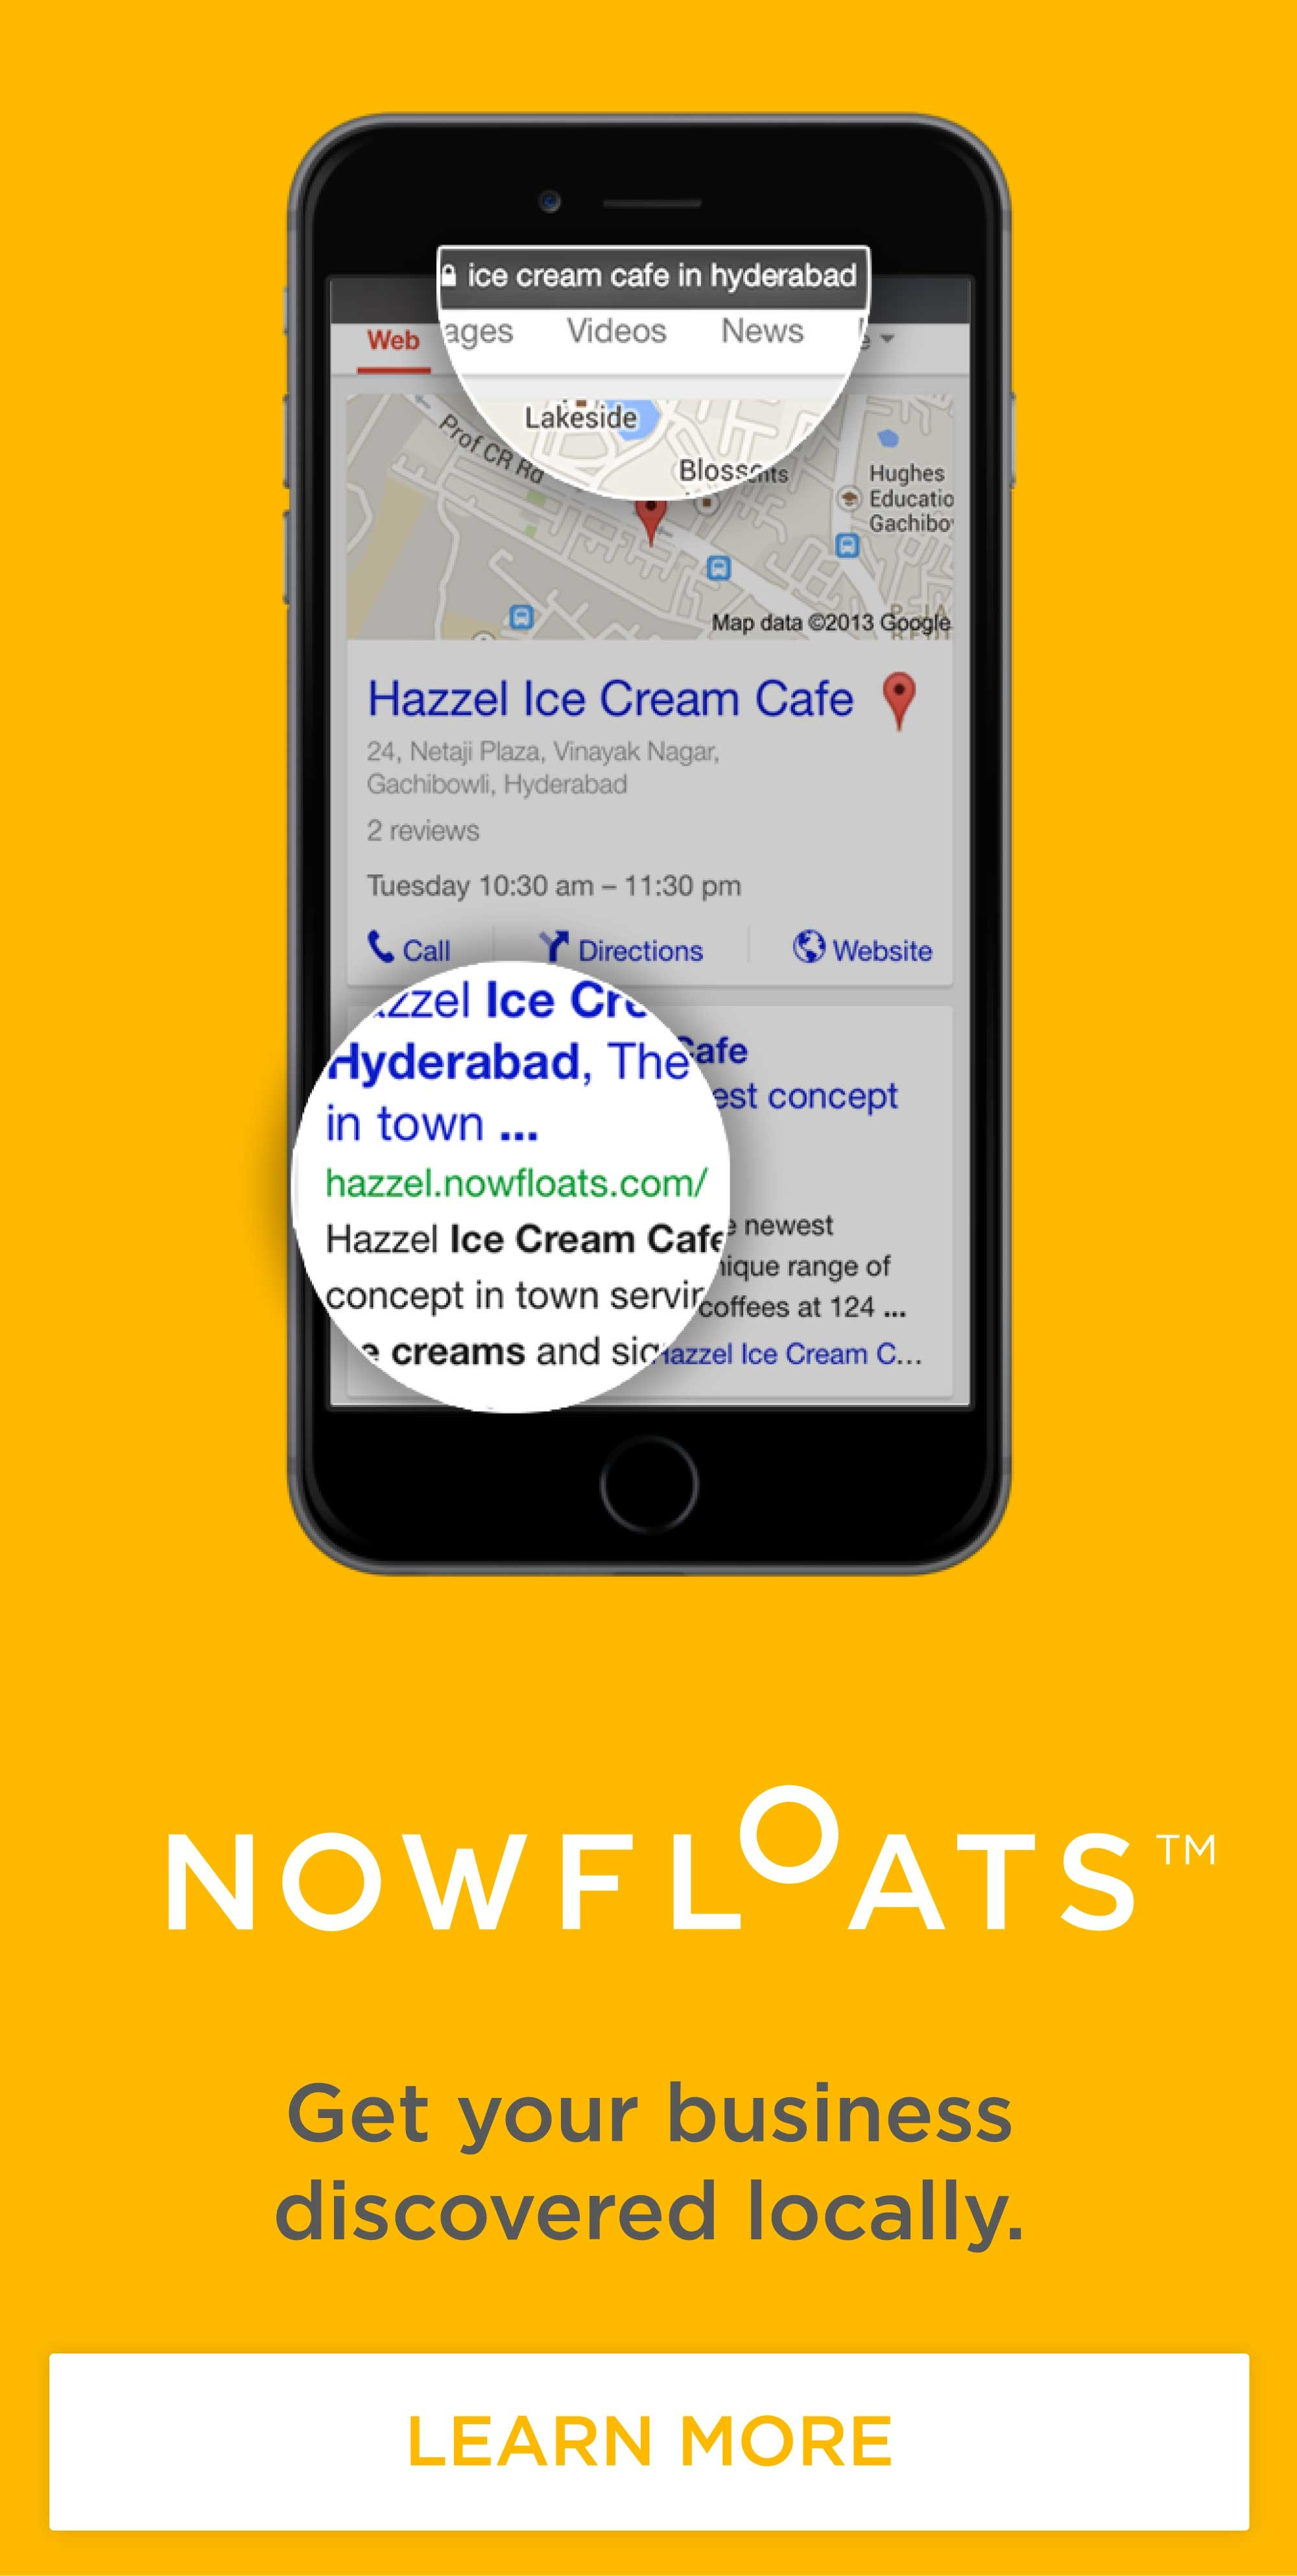 Know more about Nowfloats products